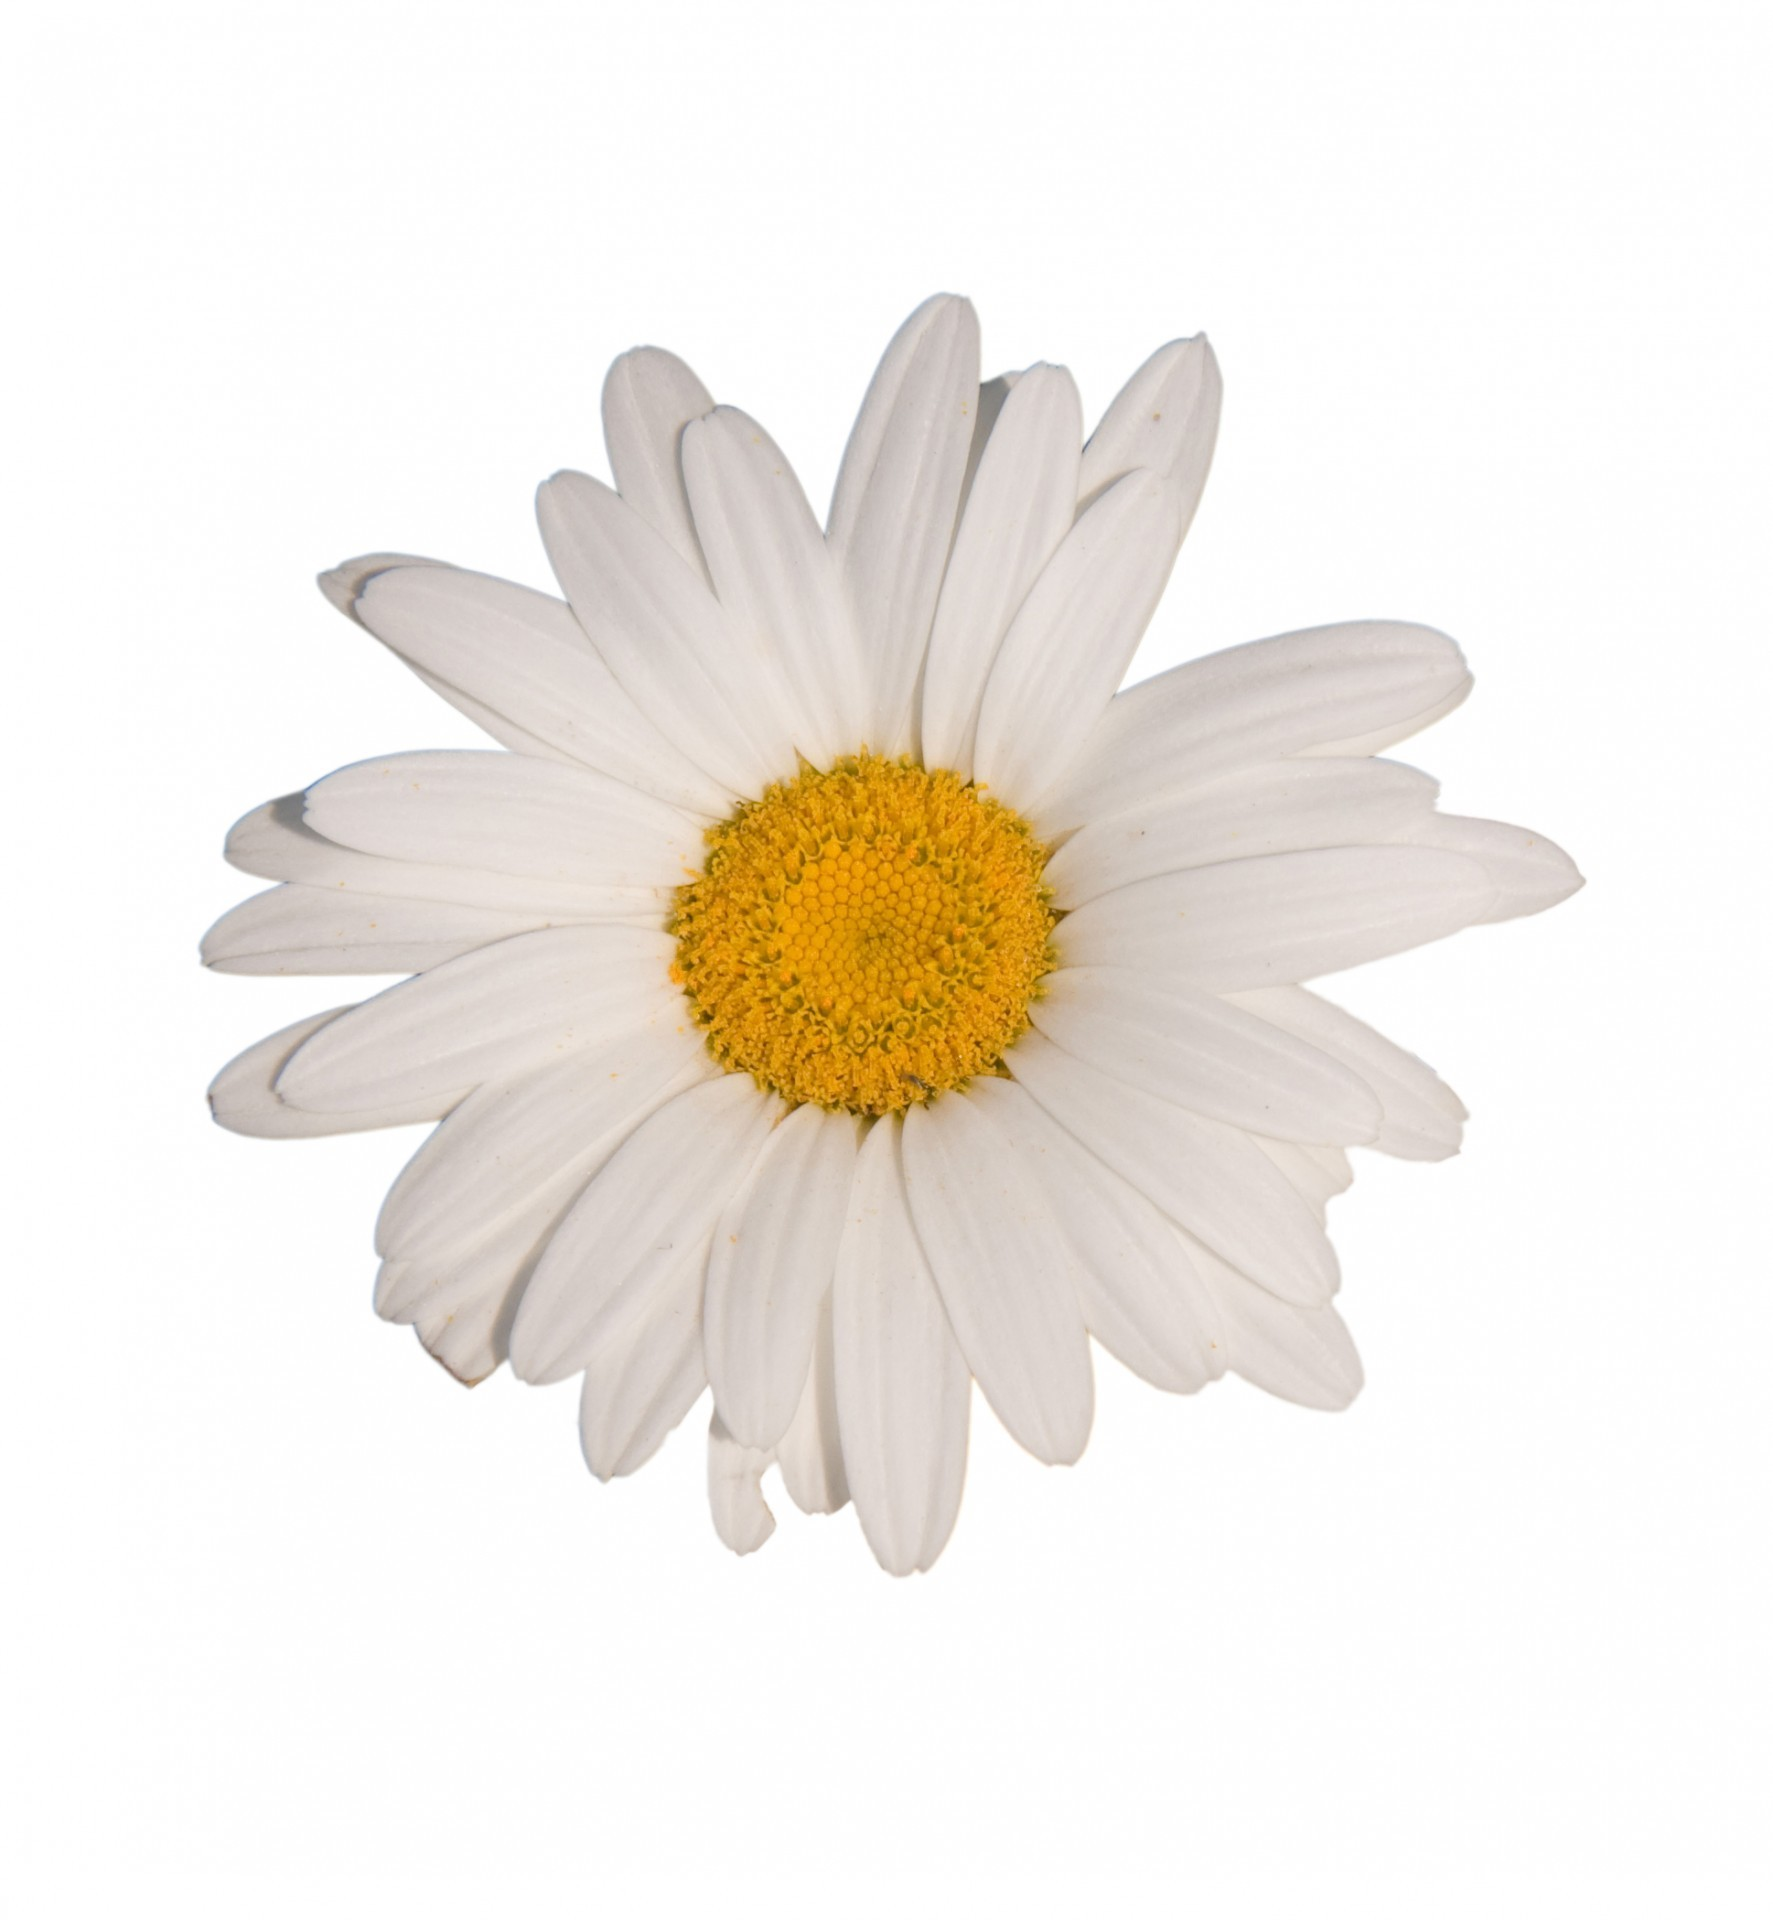 Flower white background download free hd wallpapers for desktop 1773x1920 daisy flower white background download purple mightylinksfo